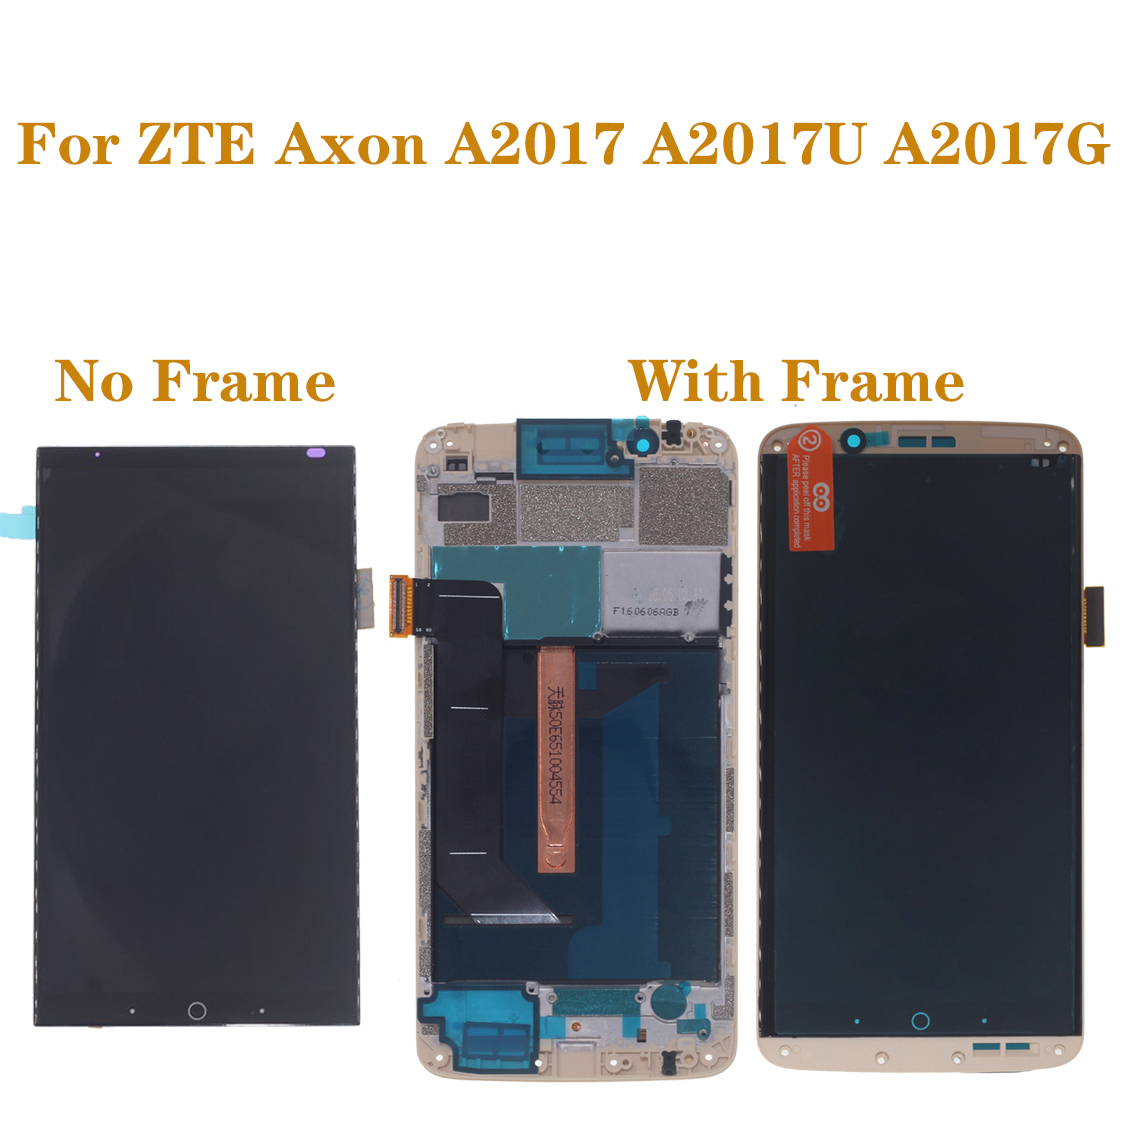 original with frame AMOLED screen for ZTE Axon 7 A2017 A2017U A2017G LCD+touch screen digitizer oled display repair parts-in Mobile Phone LCD Screens from Cellphones & Telecommunications